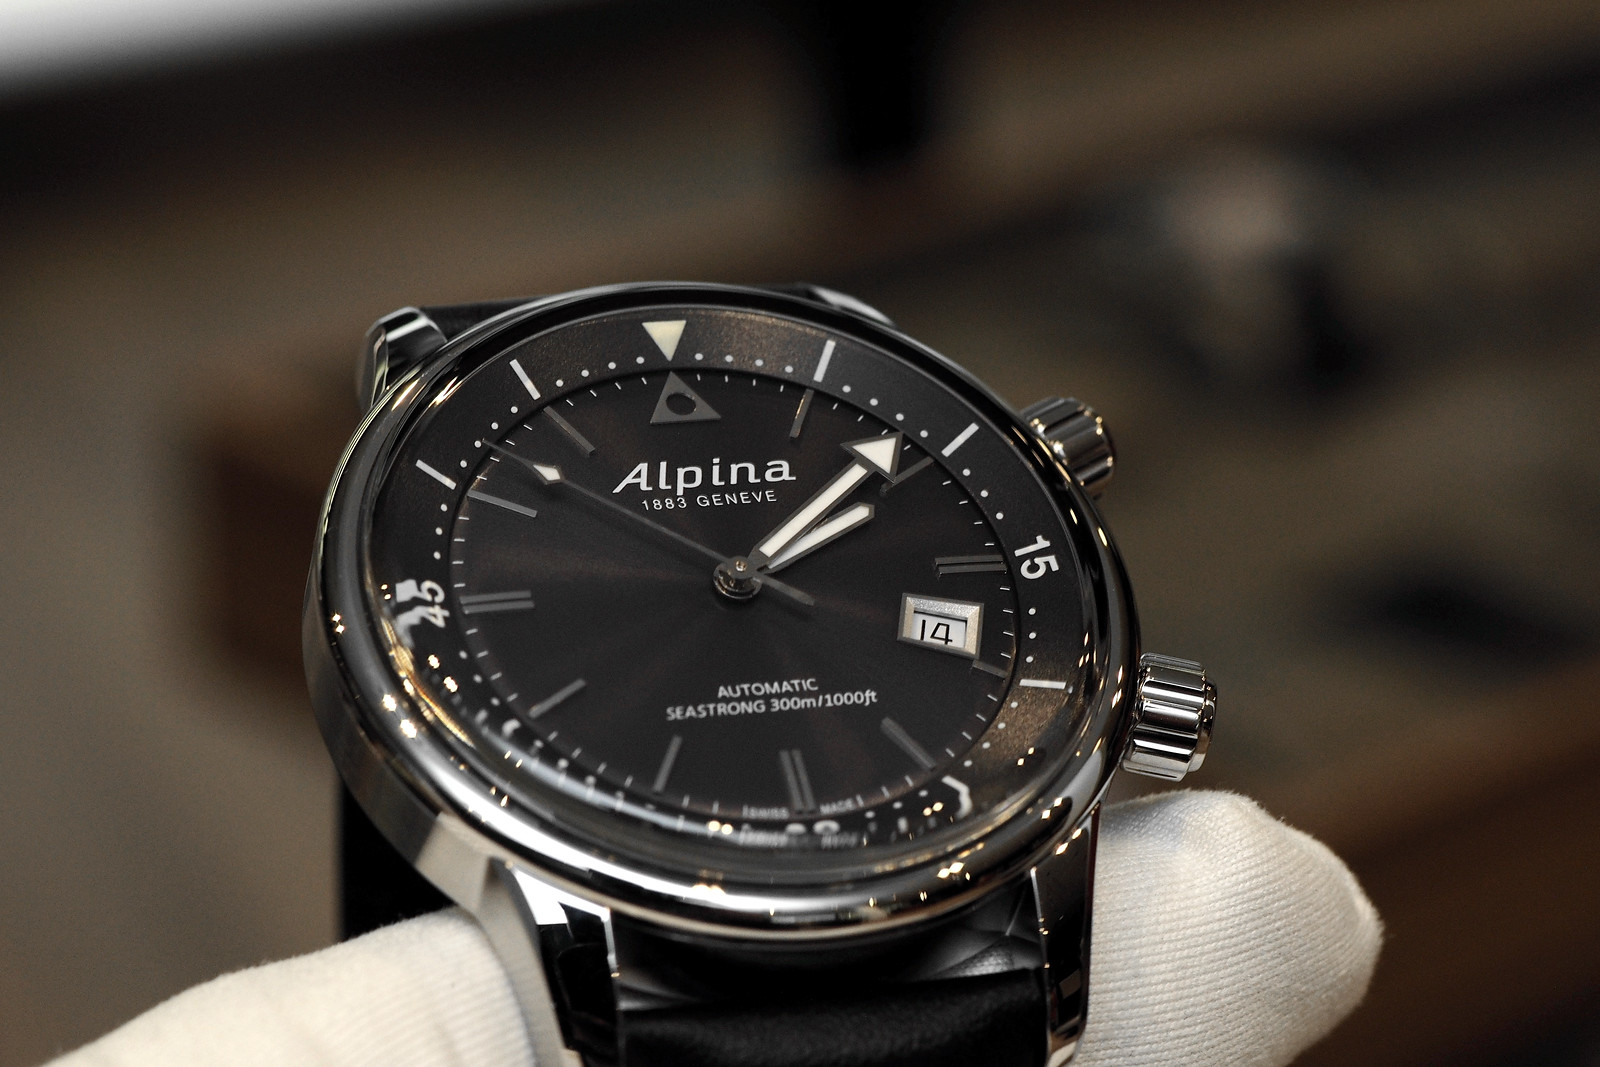 Professional Watches HandsOn With The Alpina Seastrong Diver - Alpina diver watch